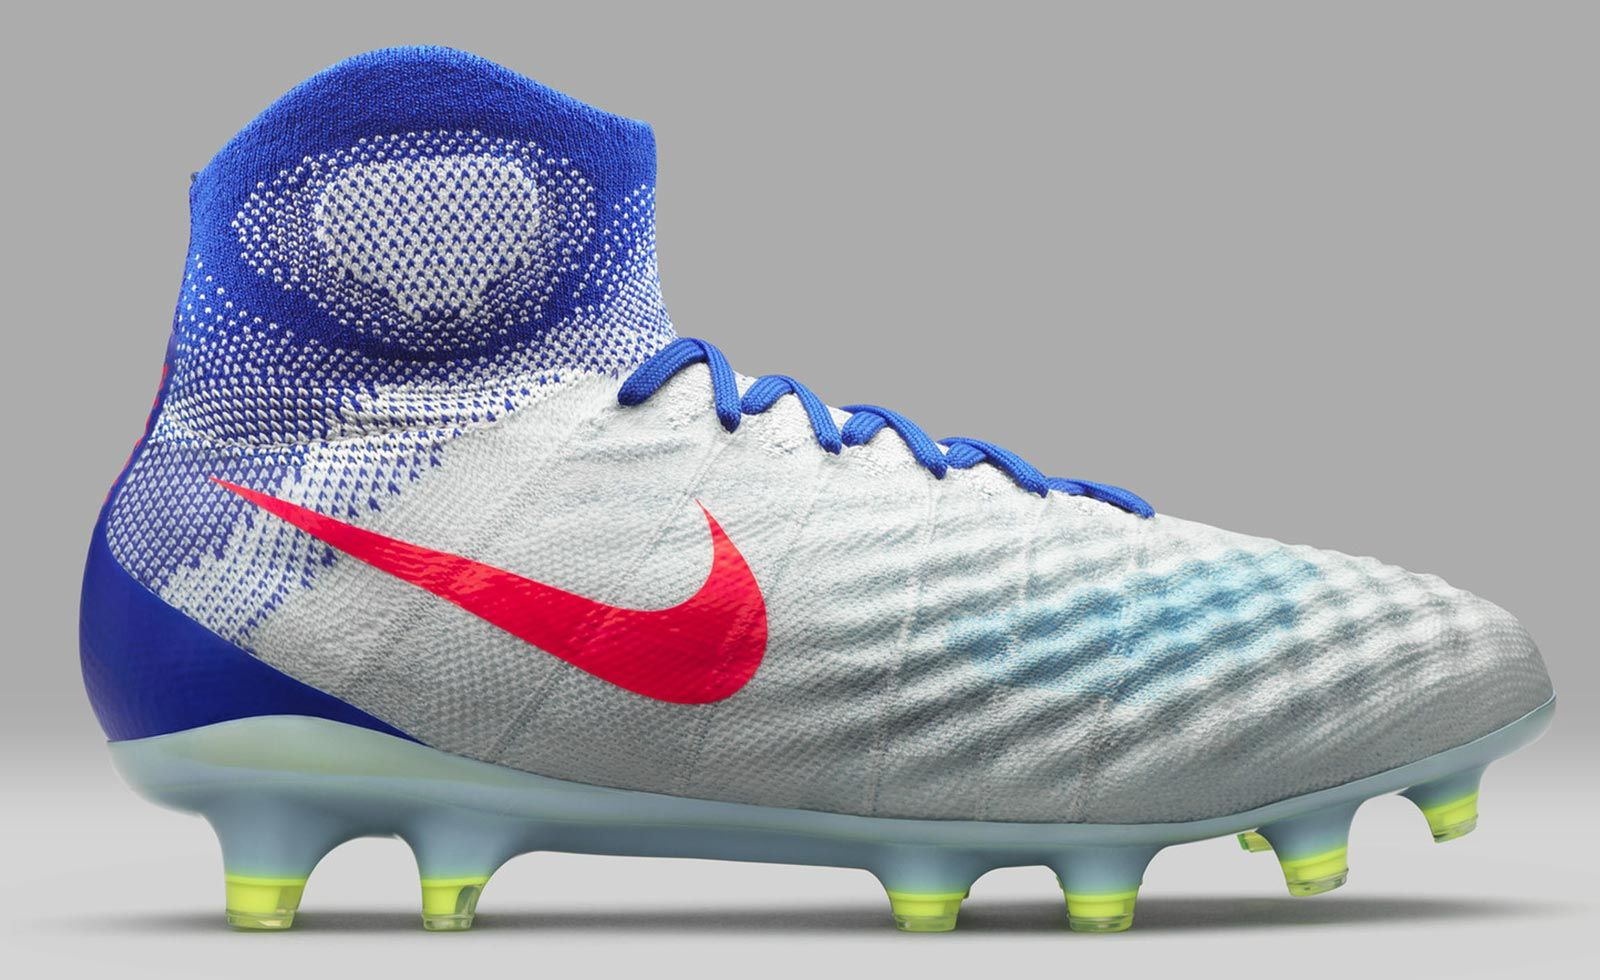 cae8eed9bd6 The new Nike Magista Obra 2 women s Olympics soccer boots introduce a  spectacular look in white